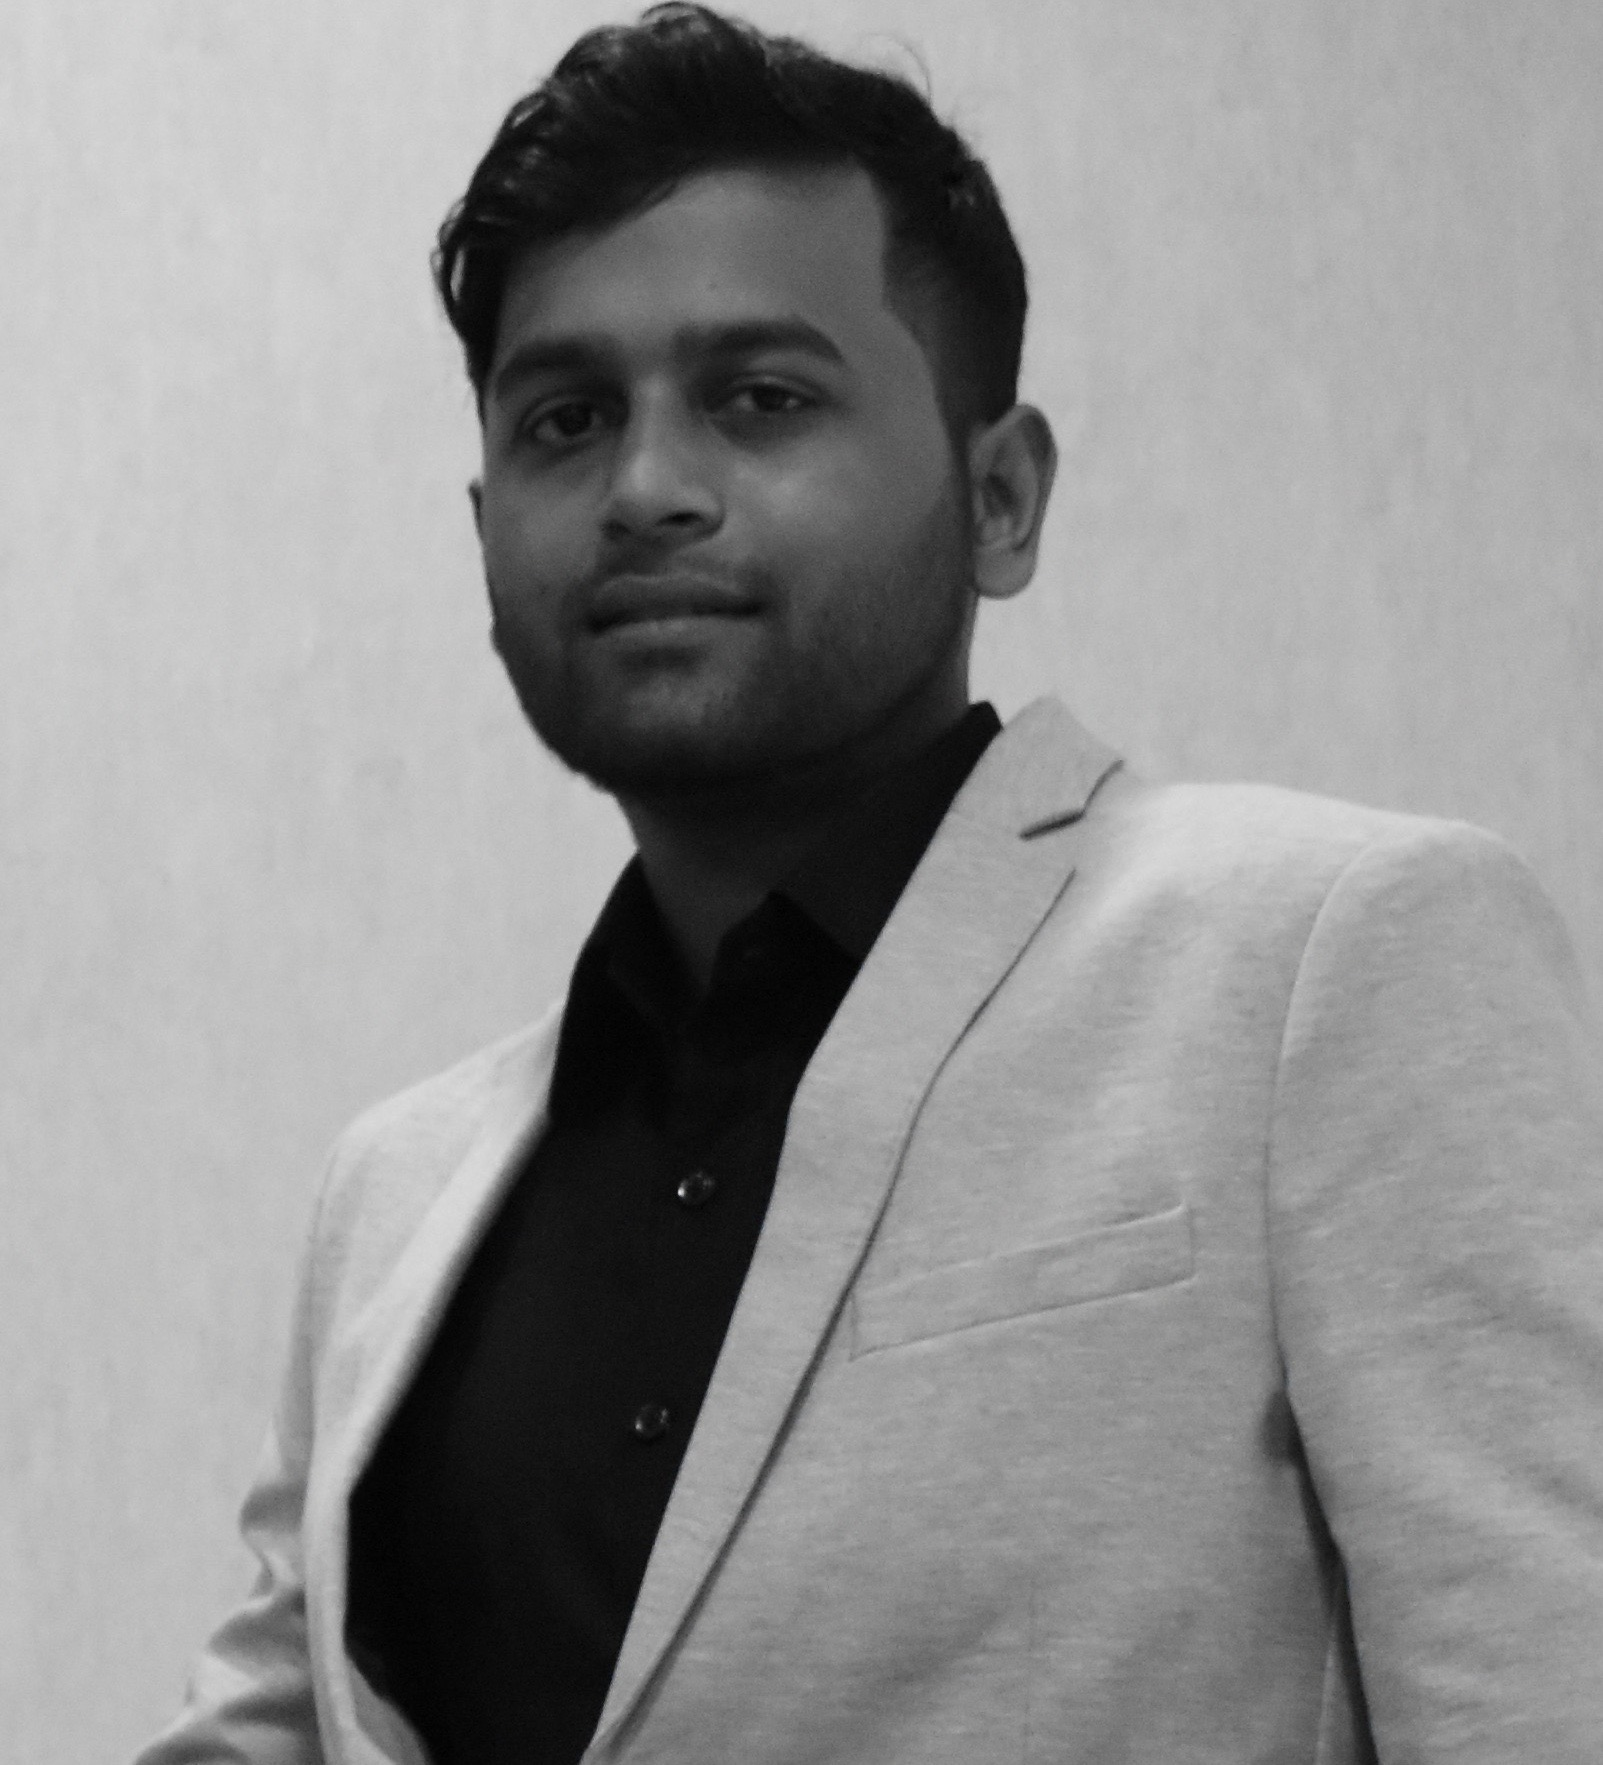 Atulya Bhat, Cheif Marketing Officer (CEO) of BuyUcoin